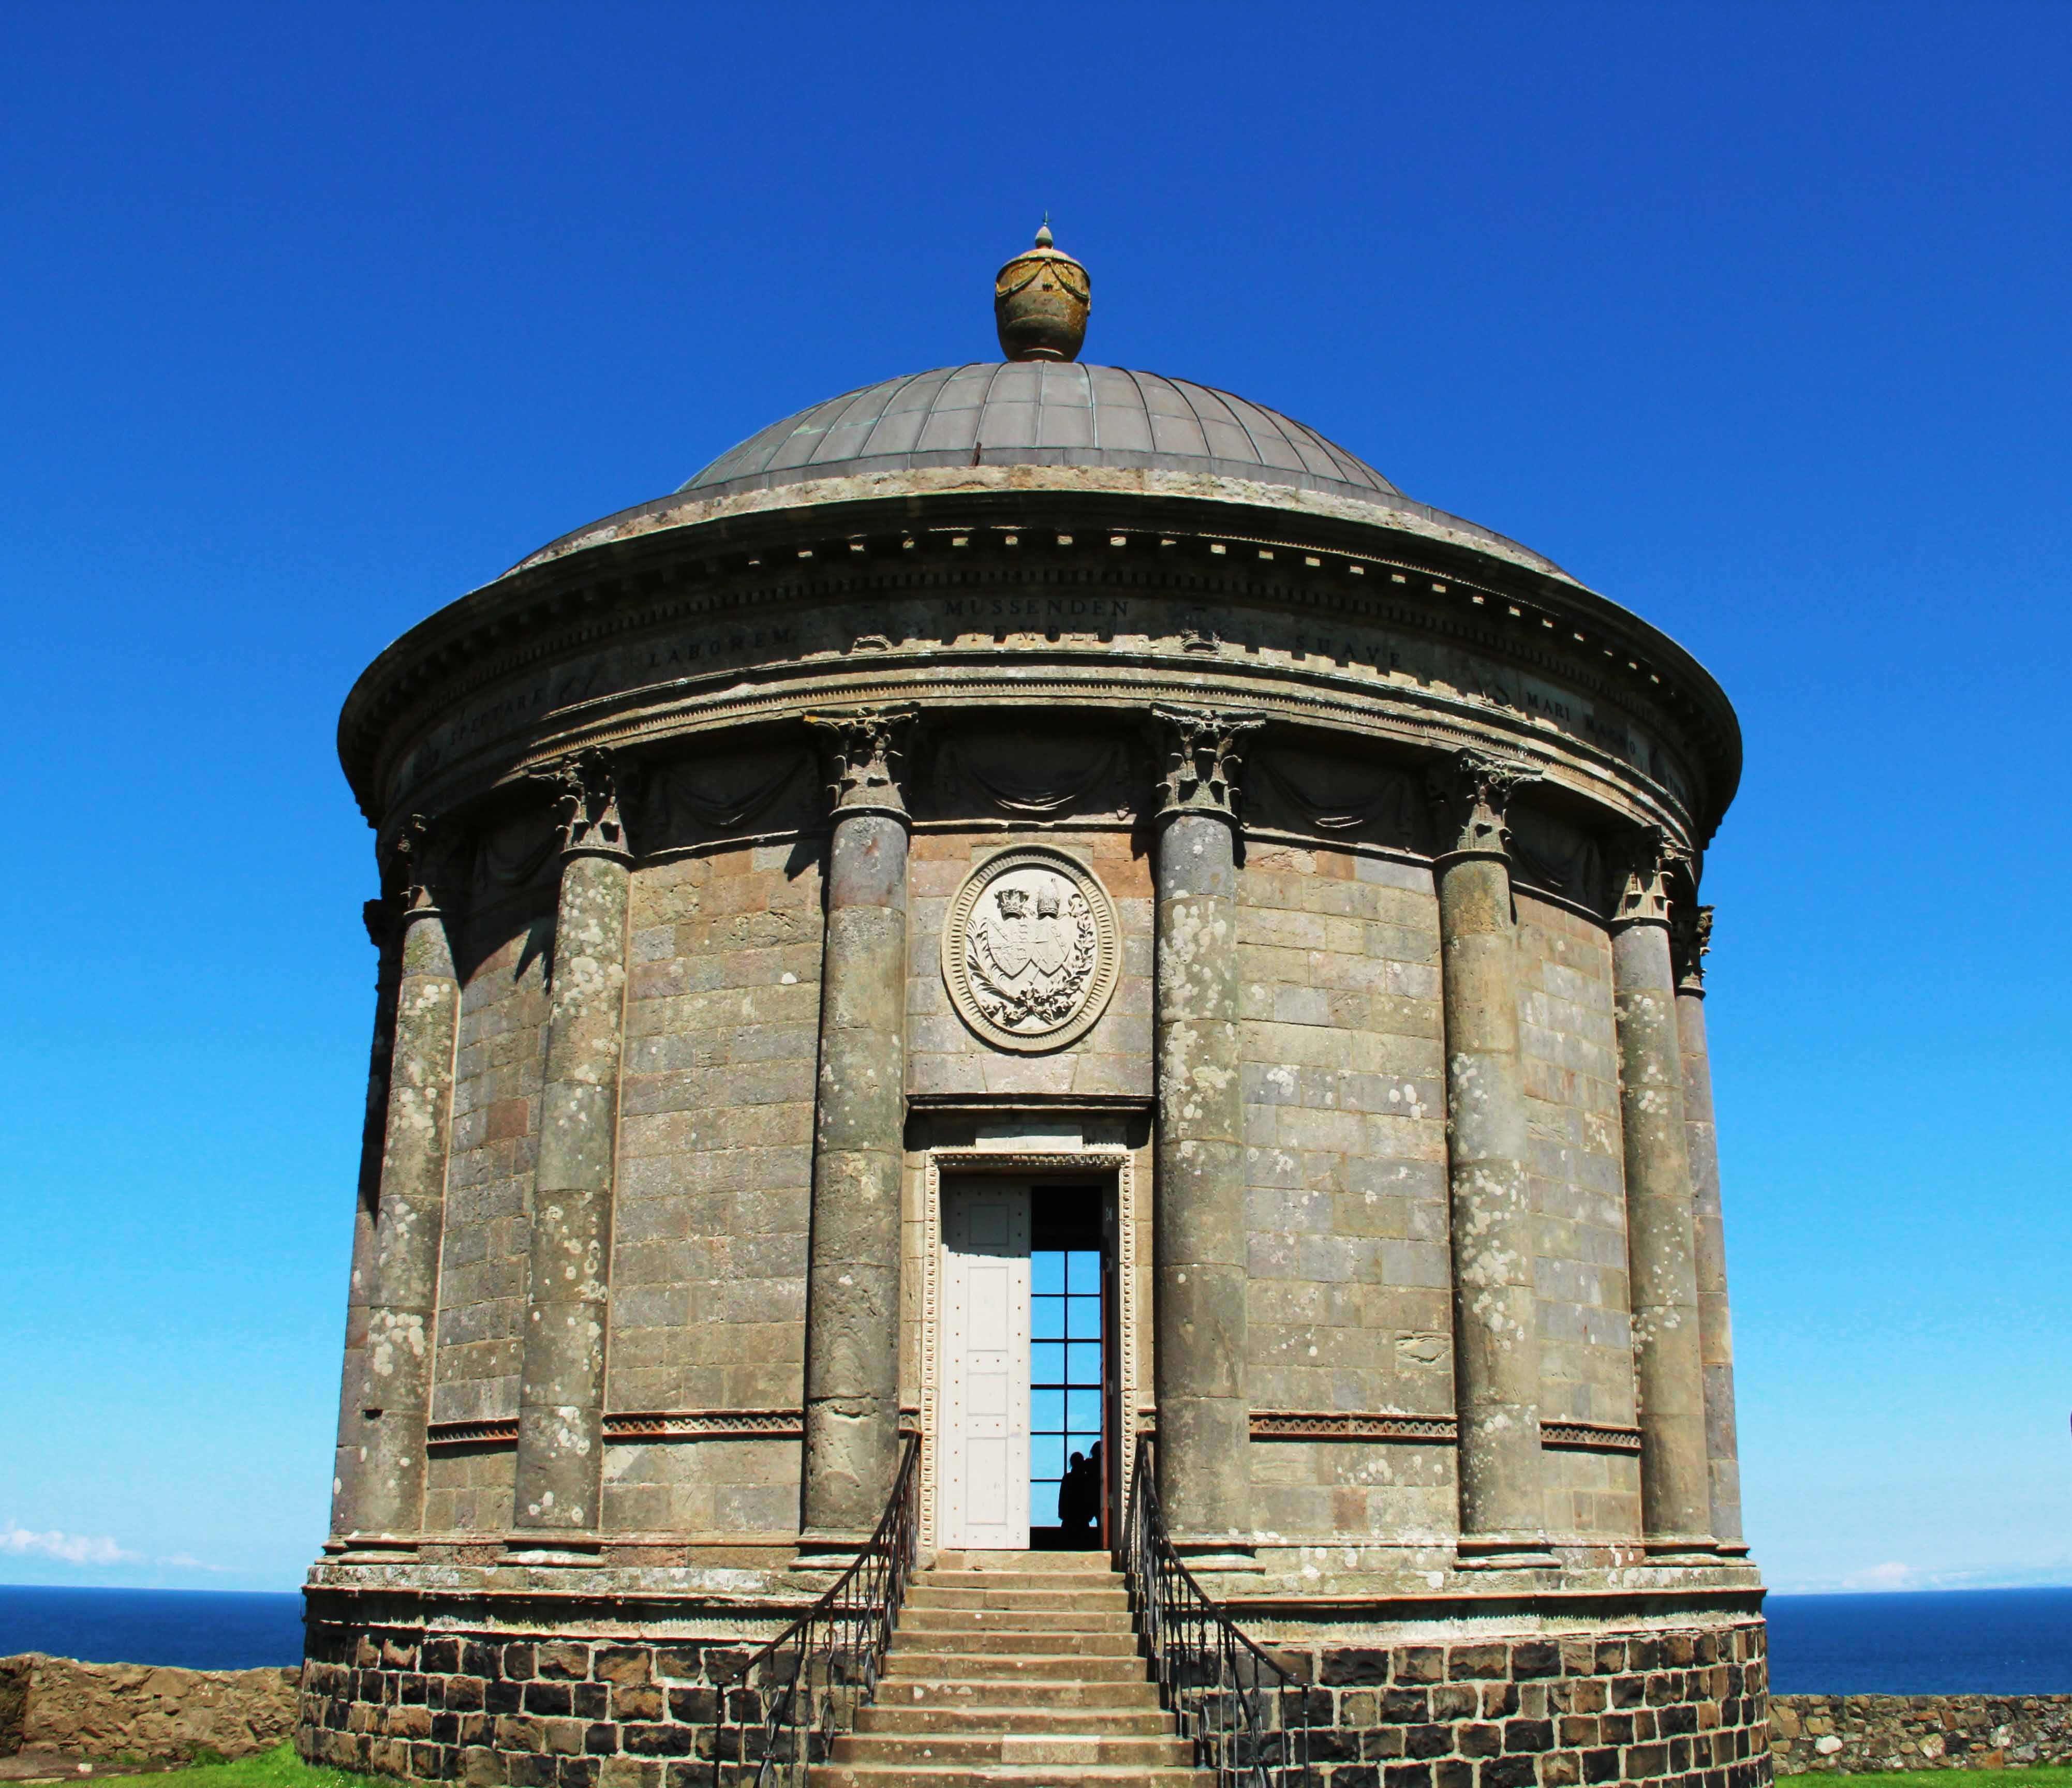 mussenden-temple1-copy.jpg